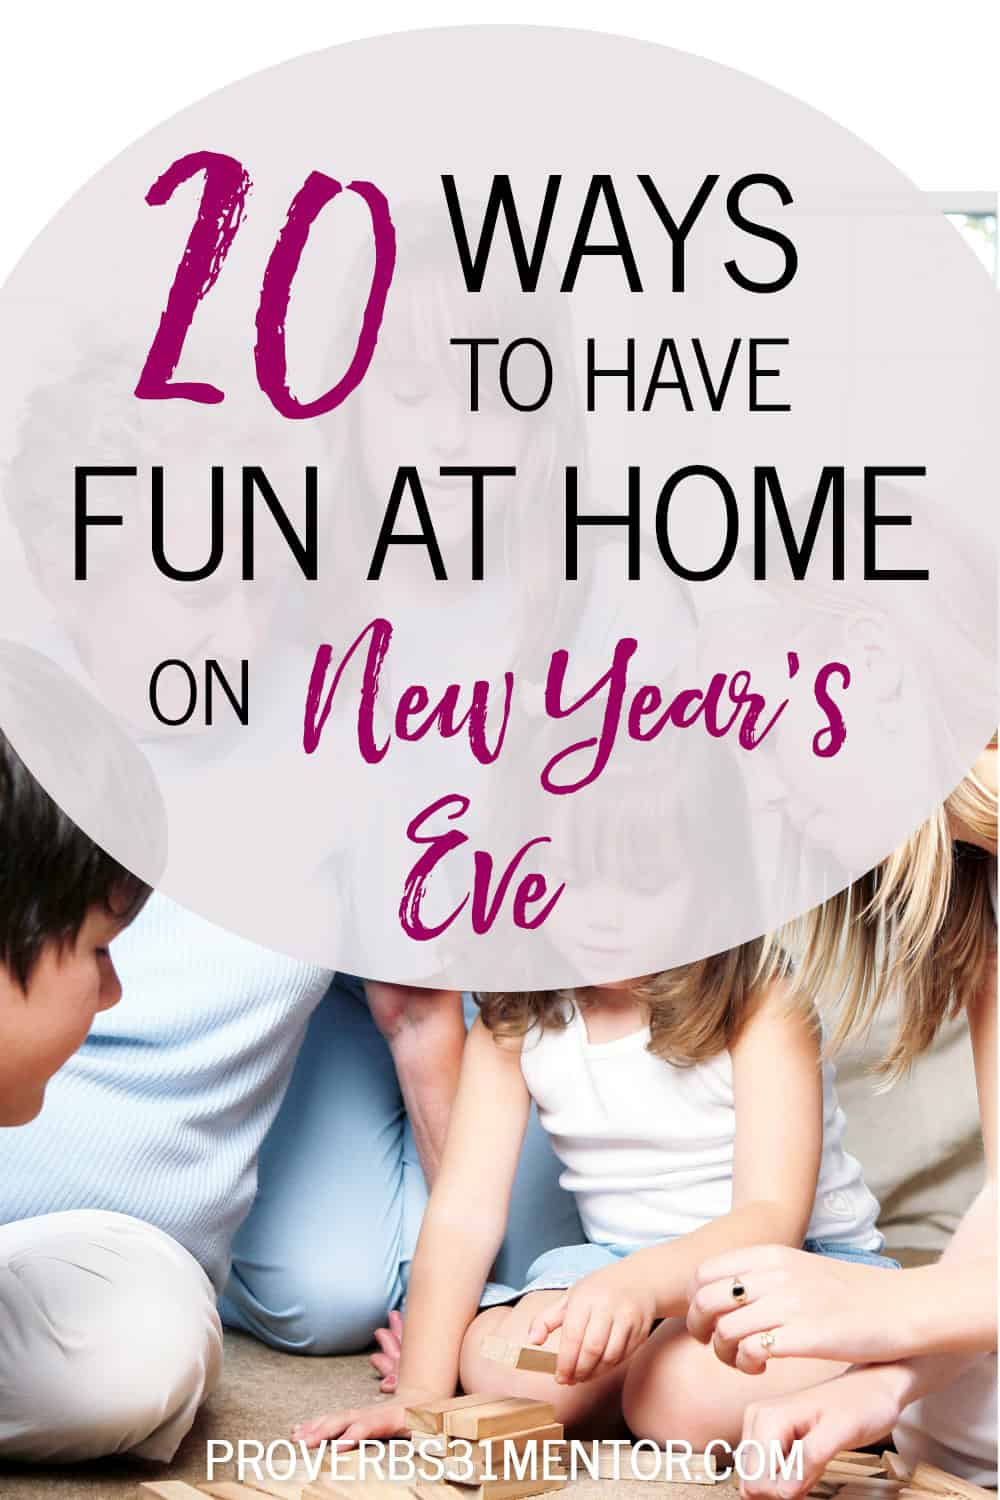 Family have fun at home on New Year's Eve